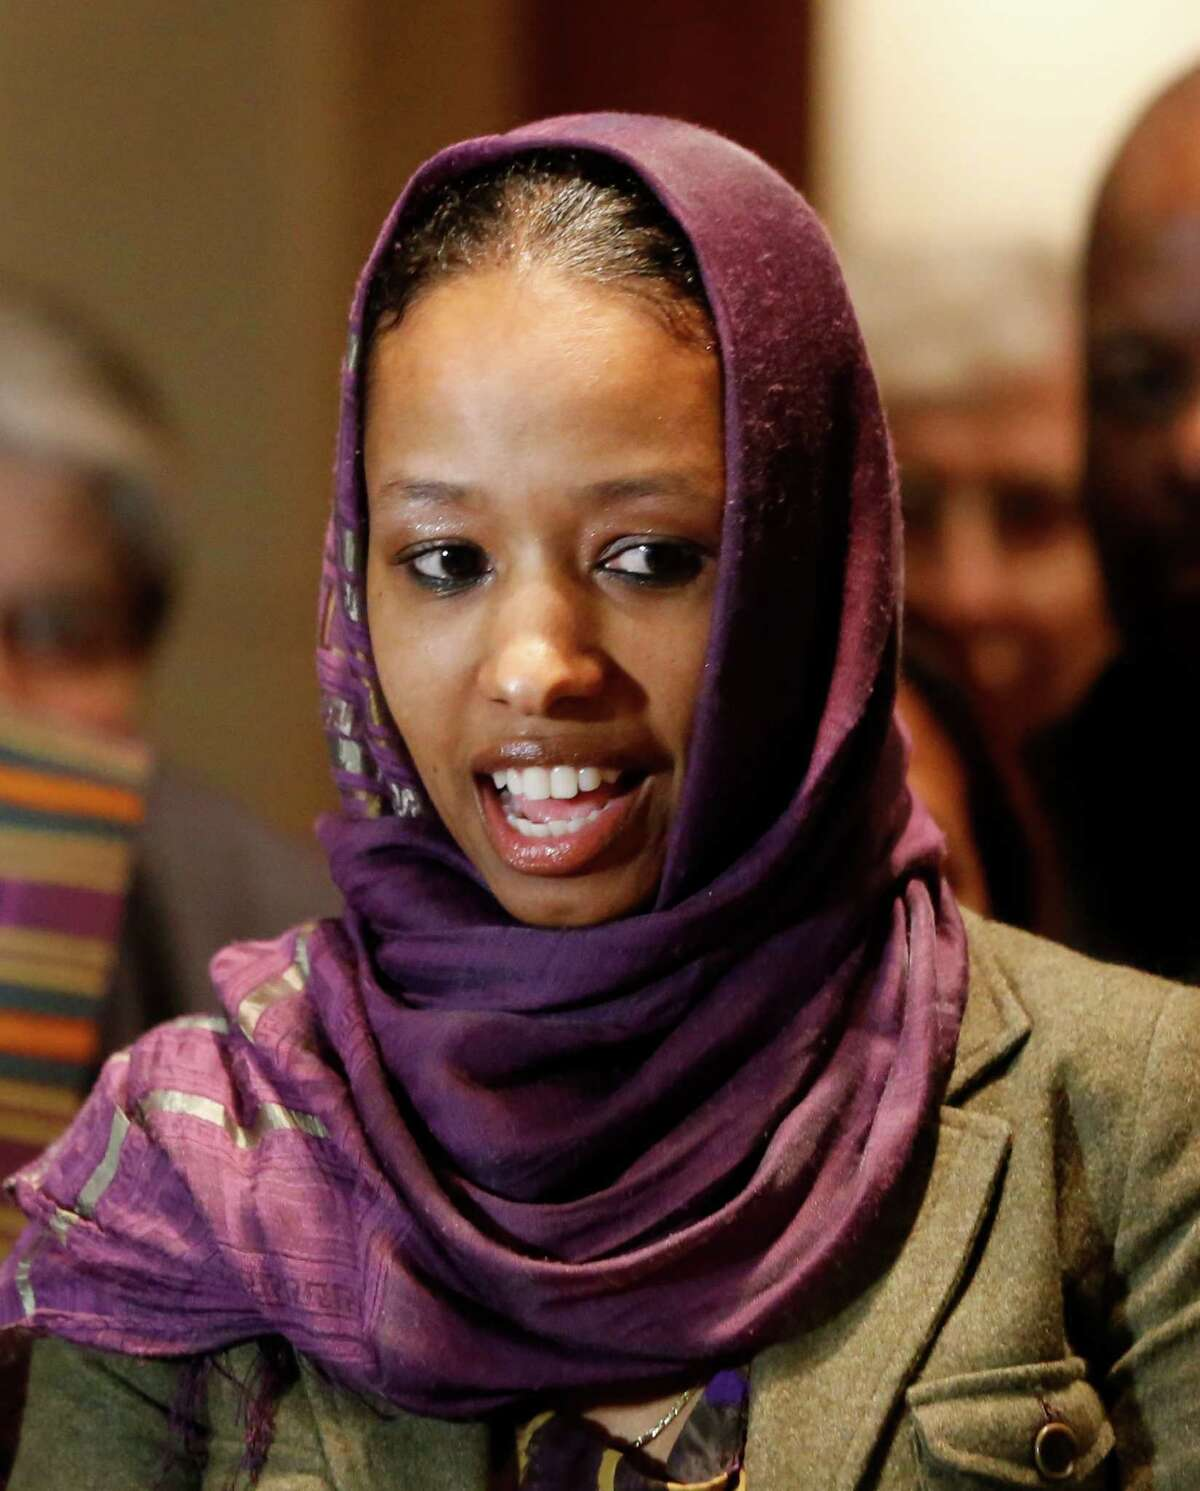 Larycia Hawkins, a Christian, wore a hijab to protest